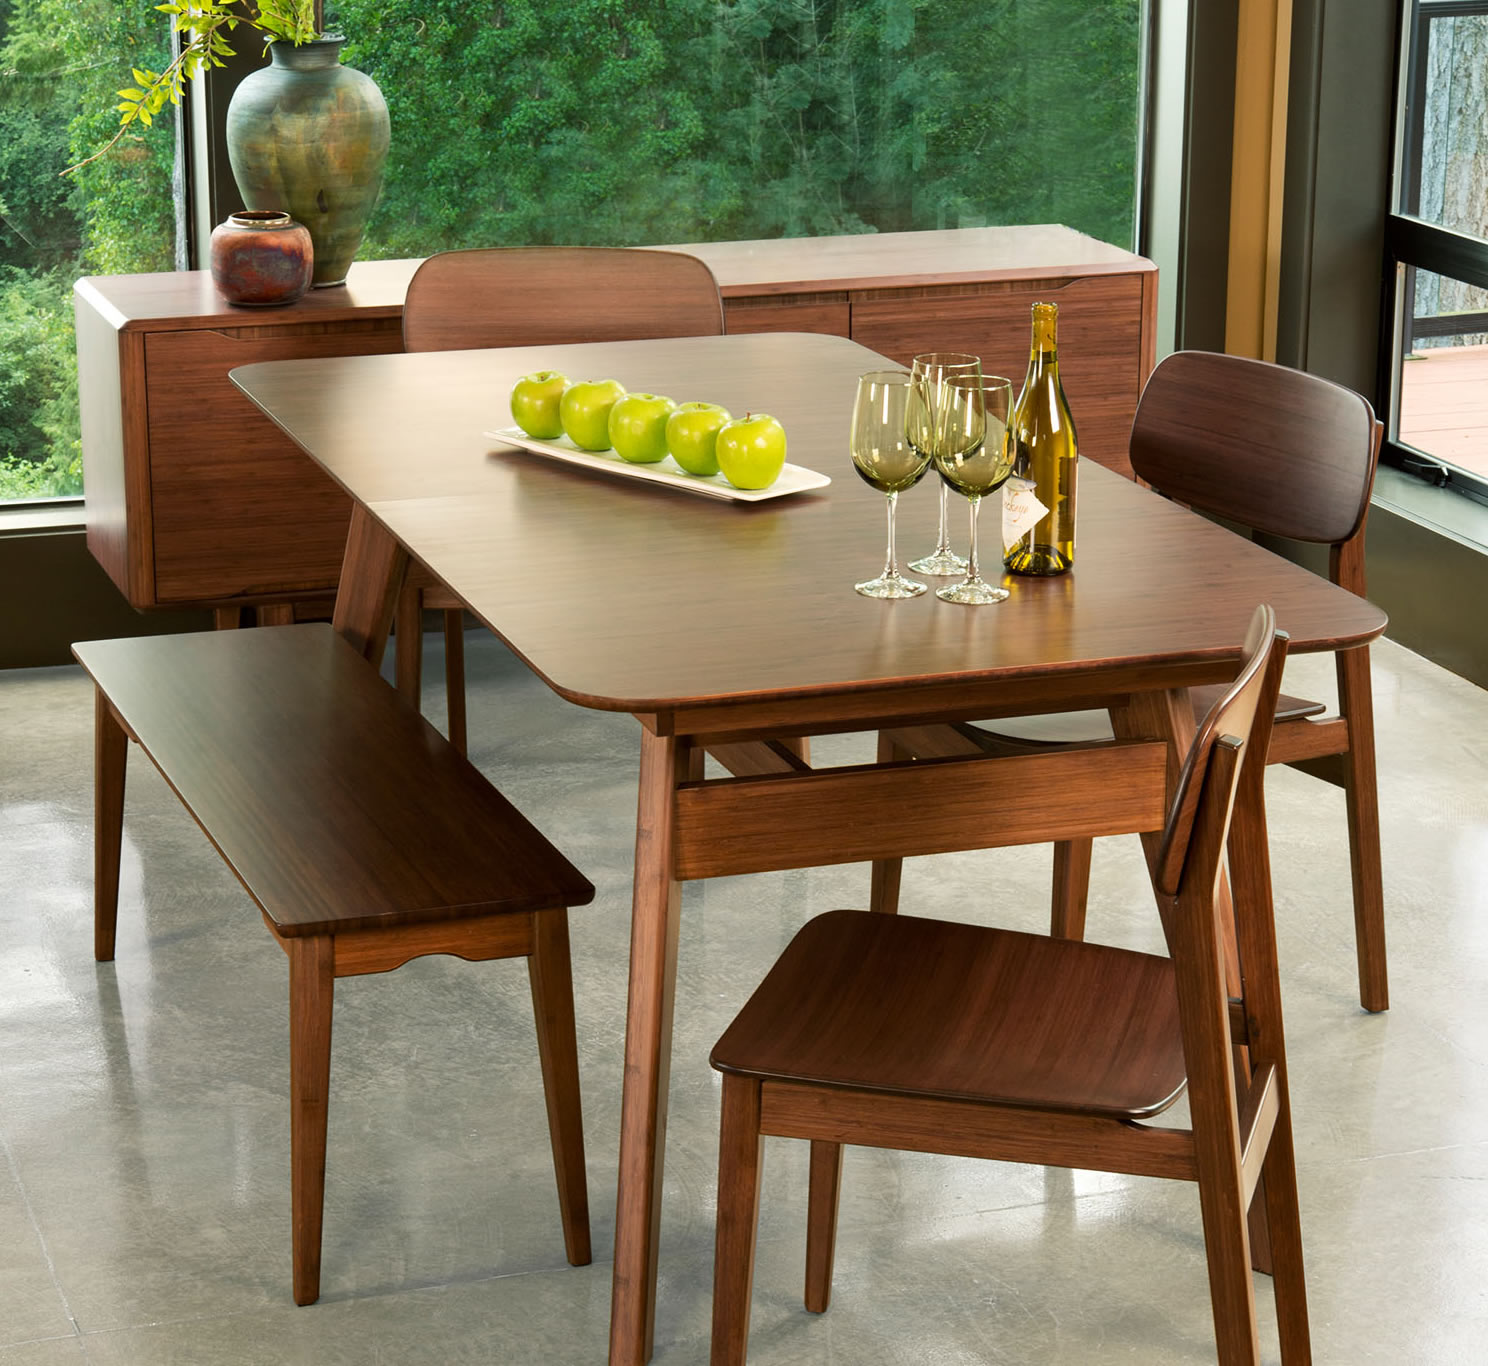 environmentally friendly furniture. Environmentally Friendly Furniture V